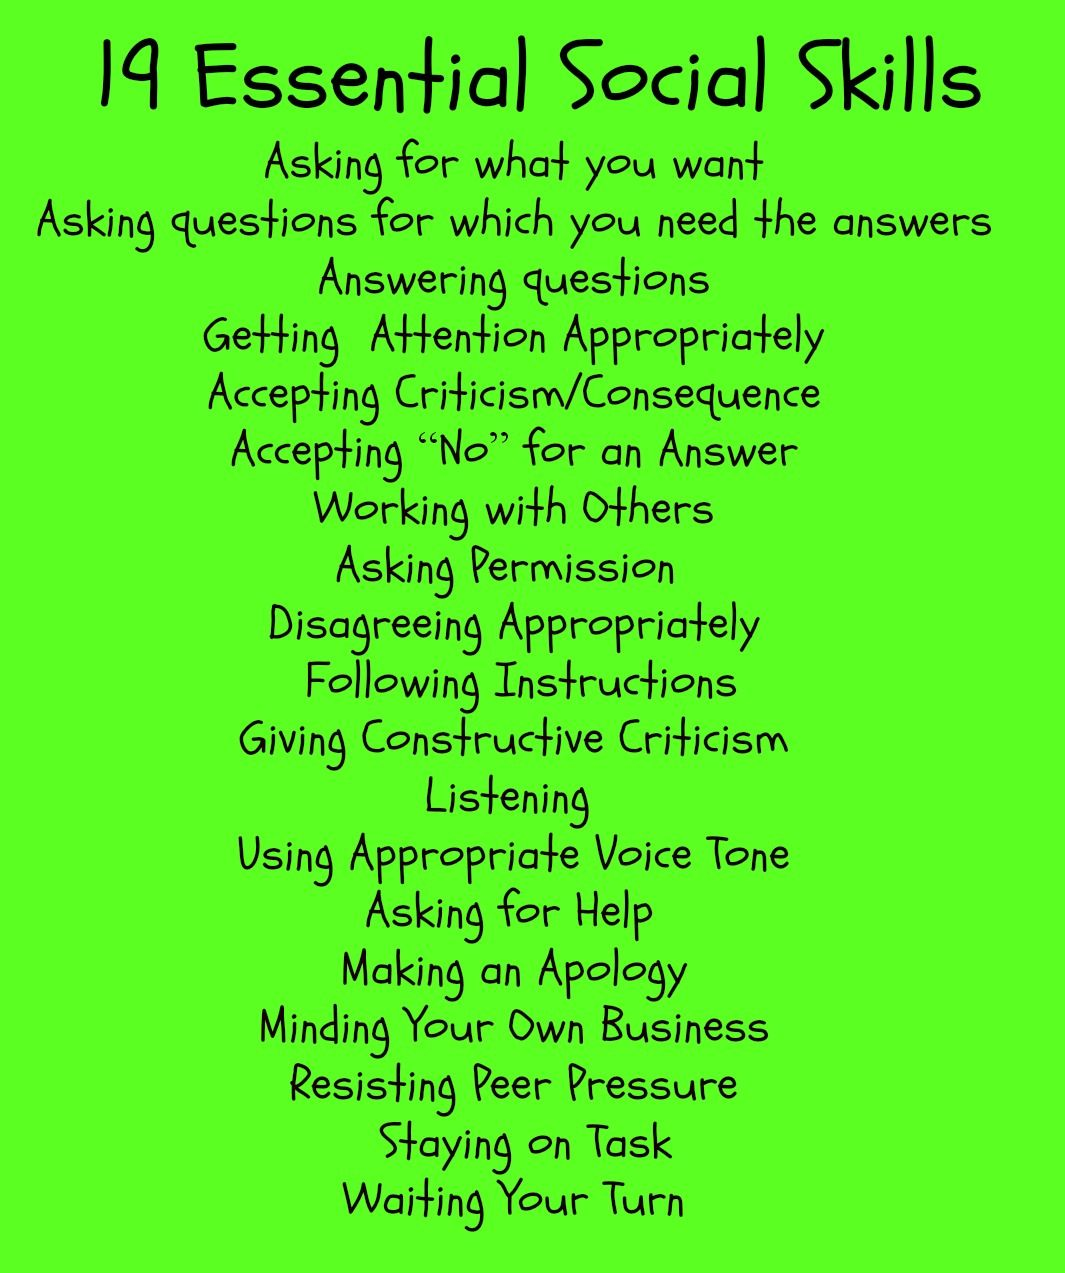 19 Essential Social Skills Counseling